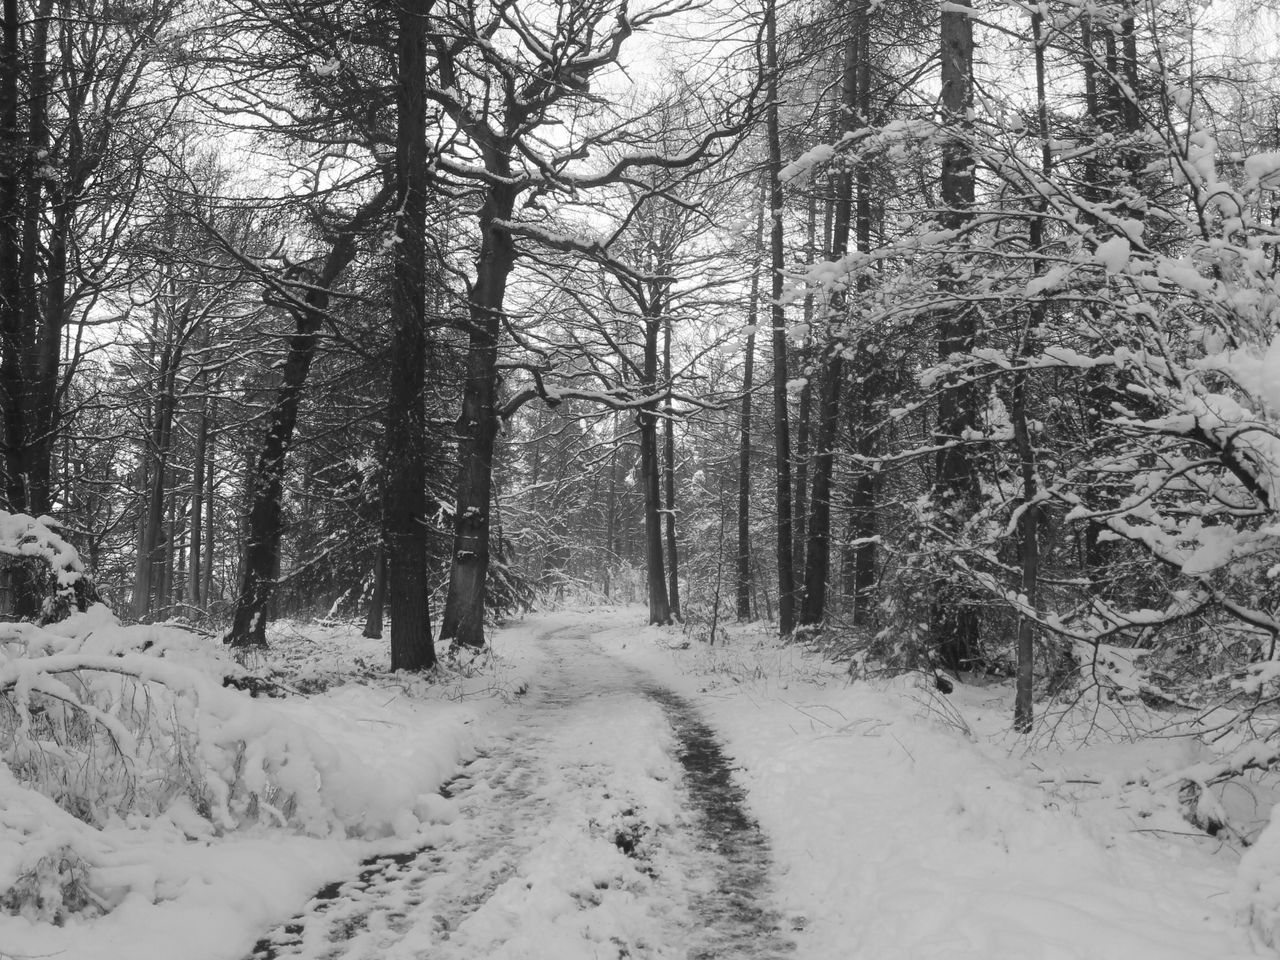 Snow Covered Pathway Amidst Bare Trees At Forest